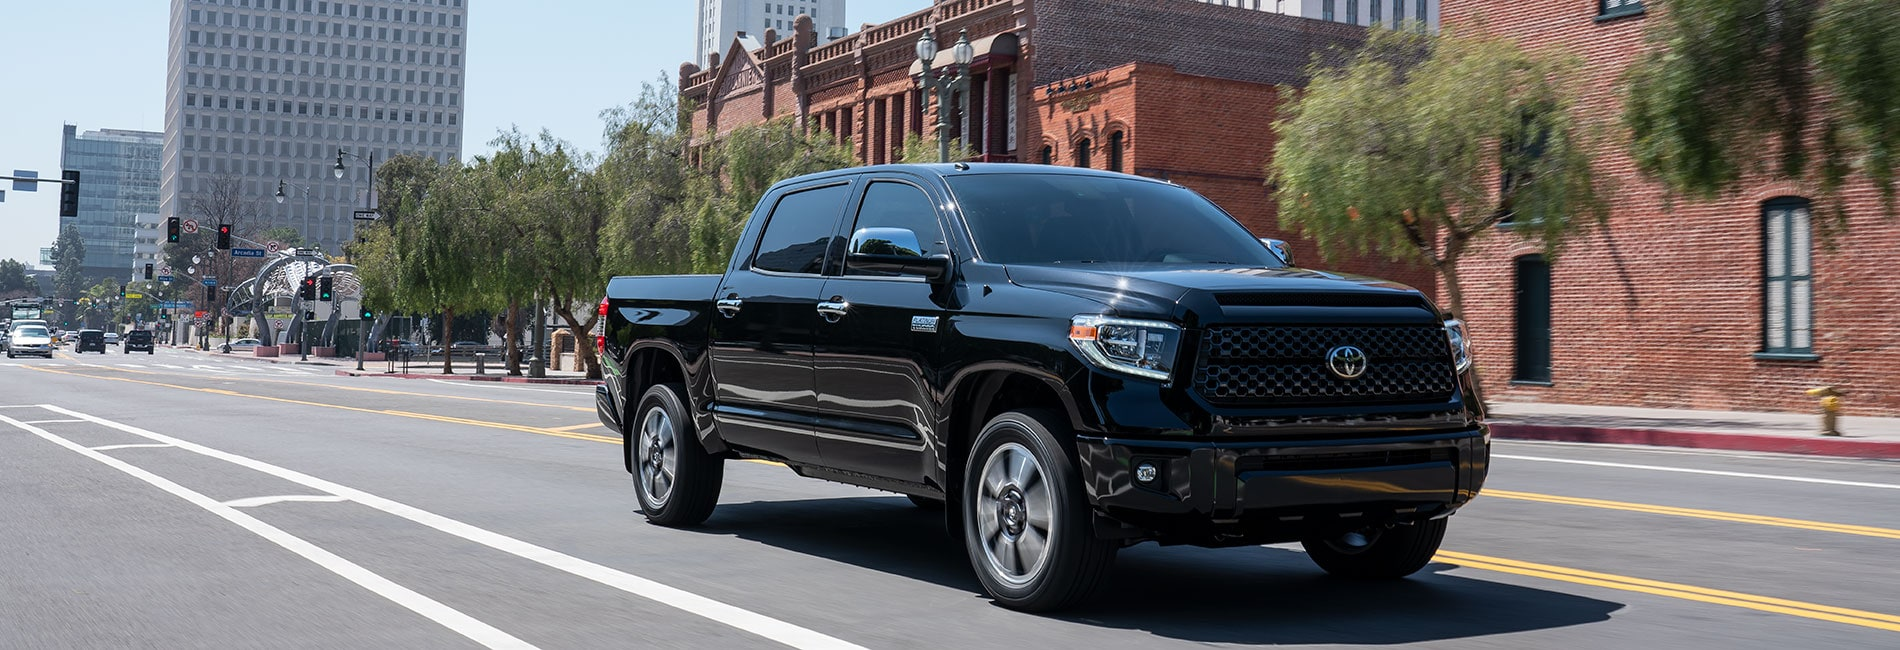 Toyota Tundra Exterior Vehicle Features